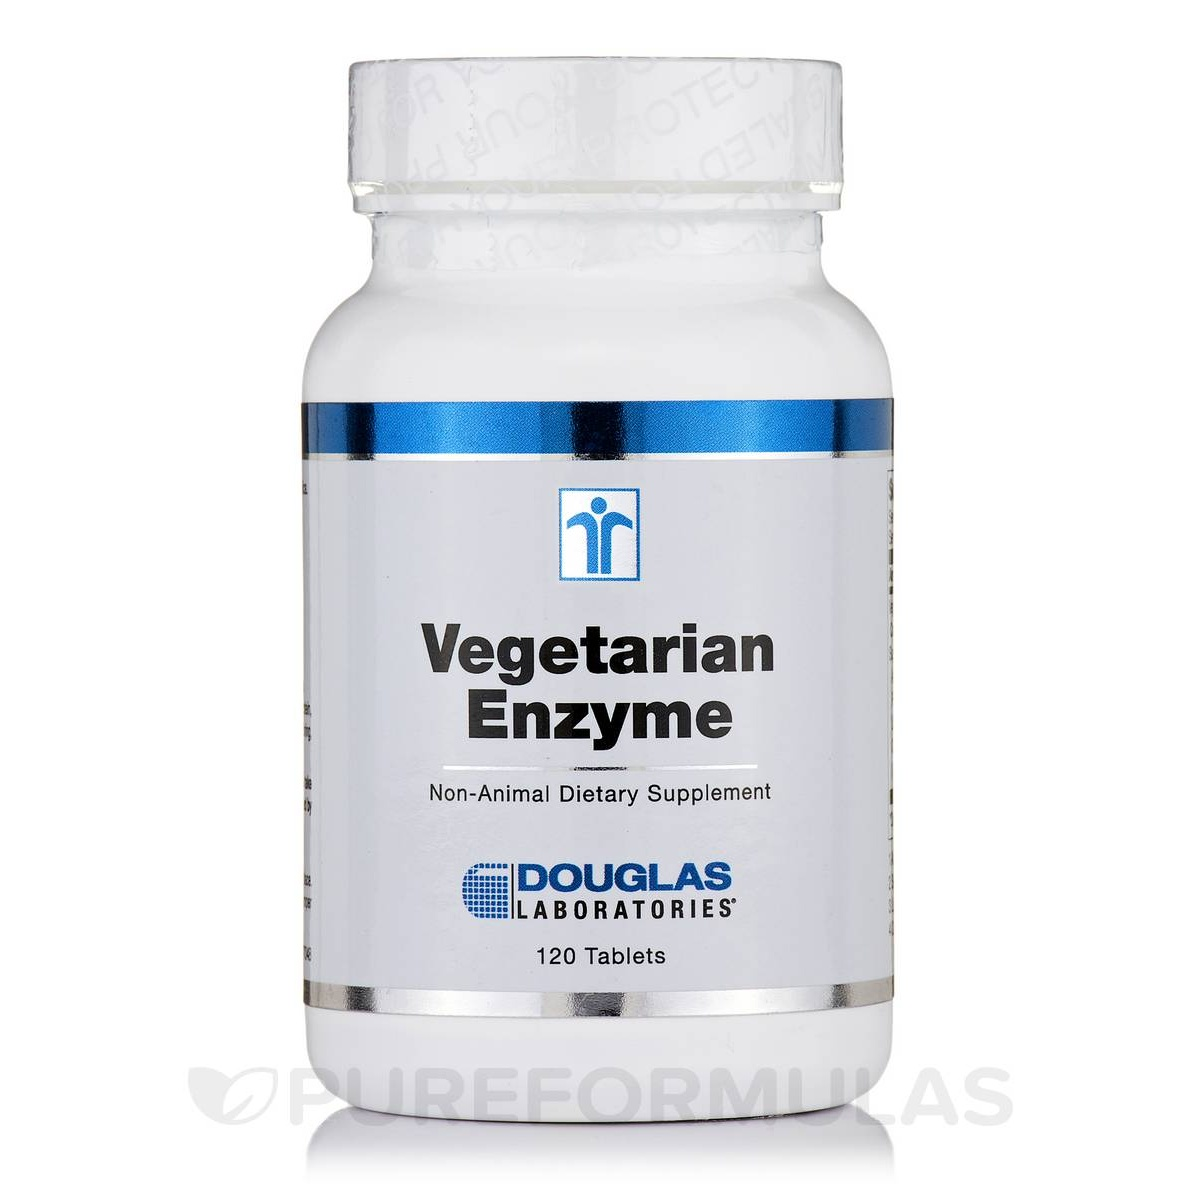 enzyme labs Shop | Buy enzyme labs Online | Ubuy Kuwait